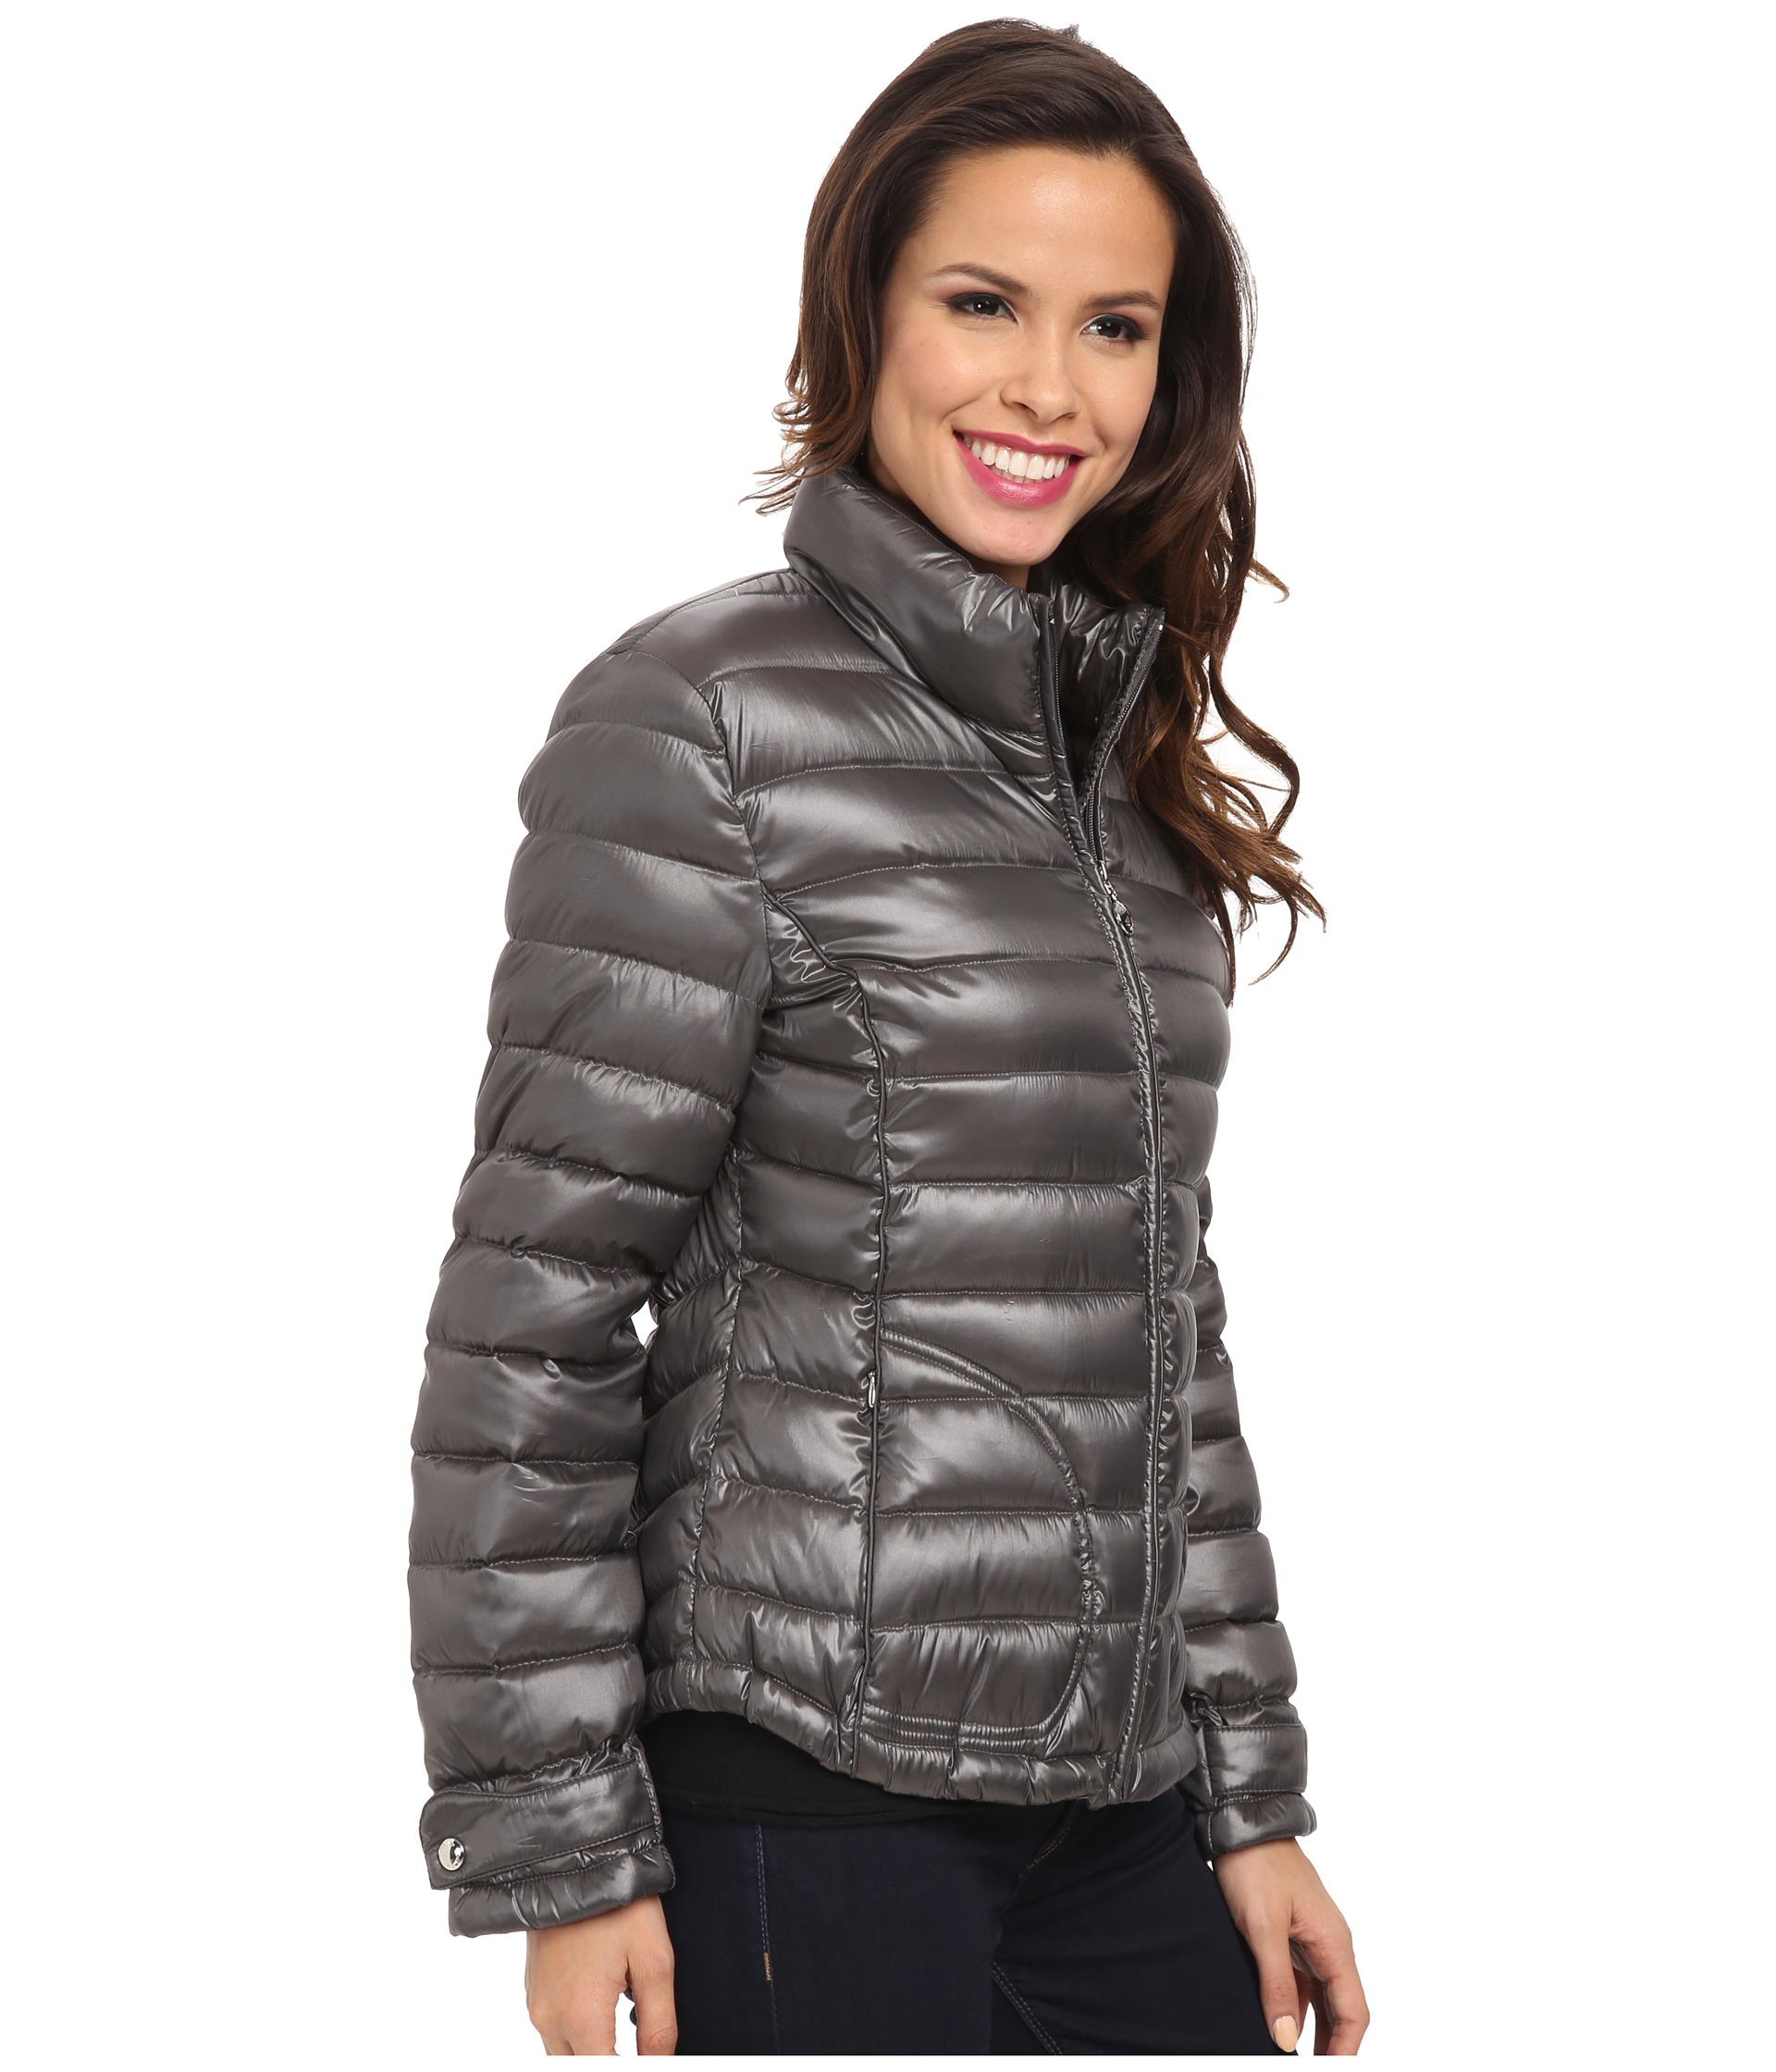 Puffy Down Jacket - Jacket To